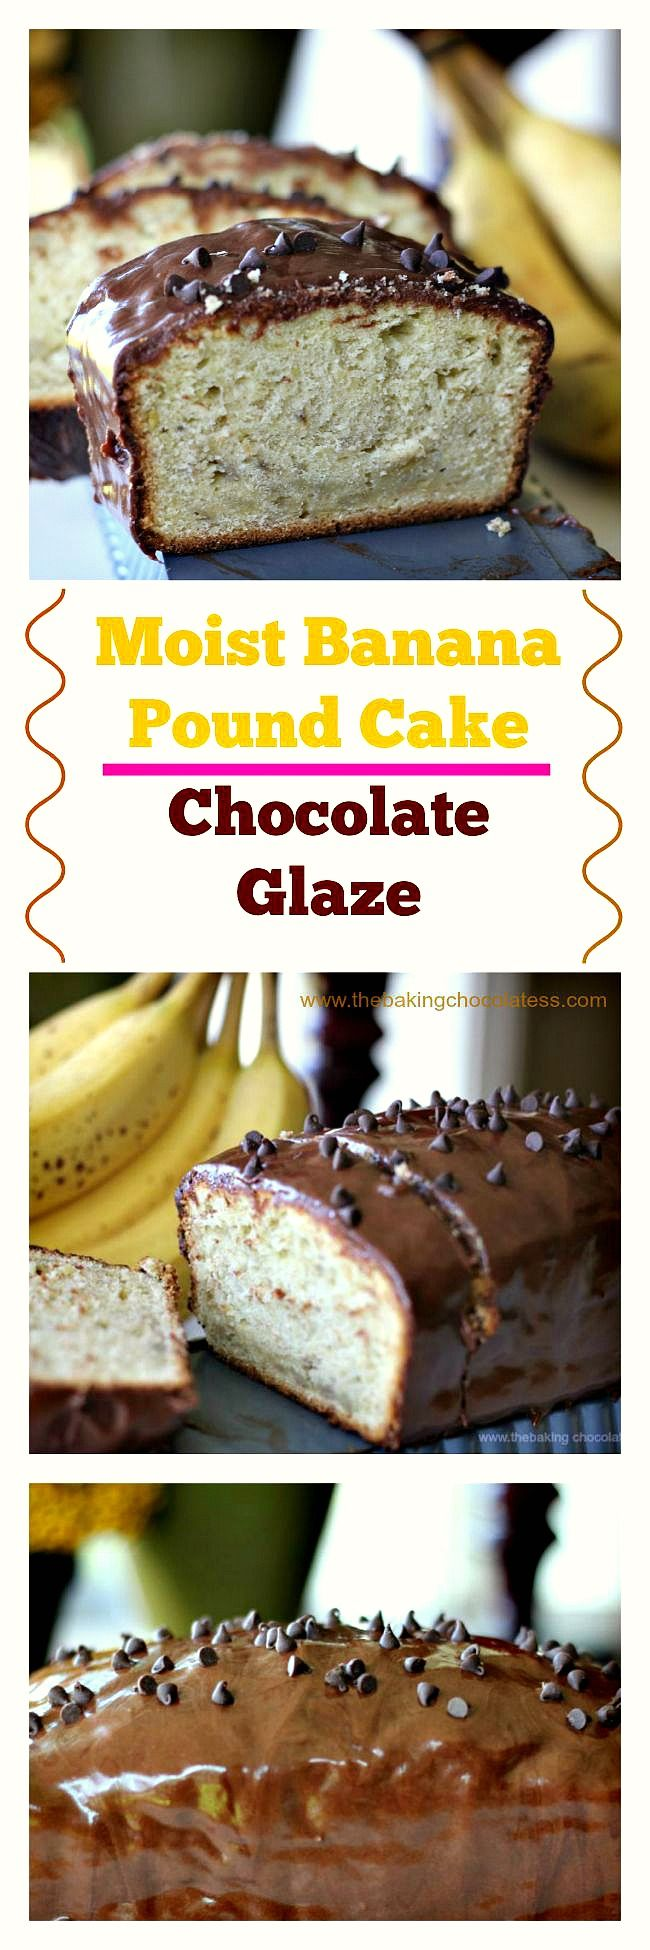 Moistest Banana Pound Cake w/Chocolate Glaze via @https://www.pinterest.com/BaknChocolaTess/